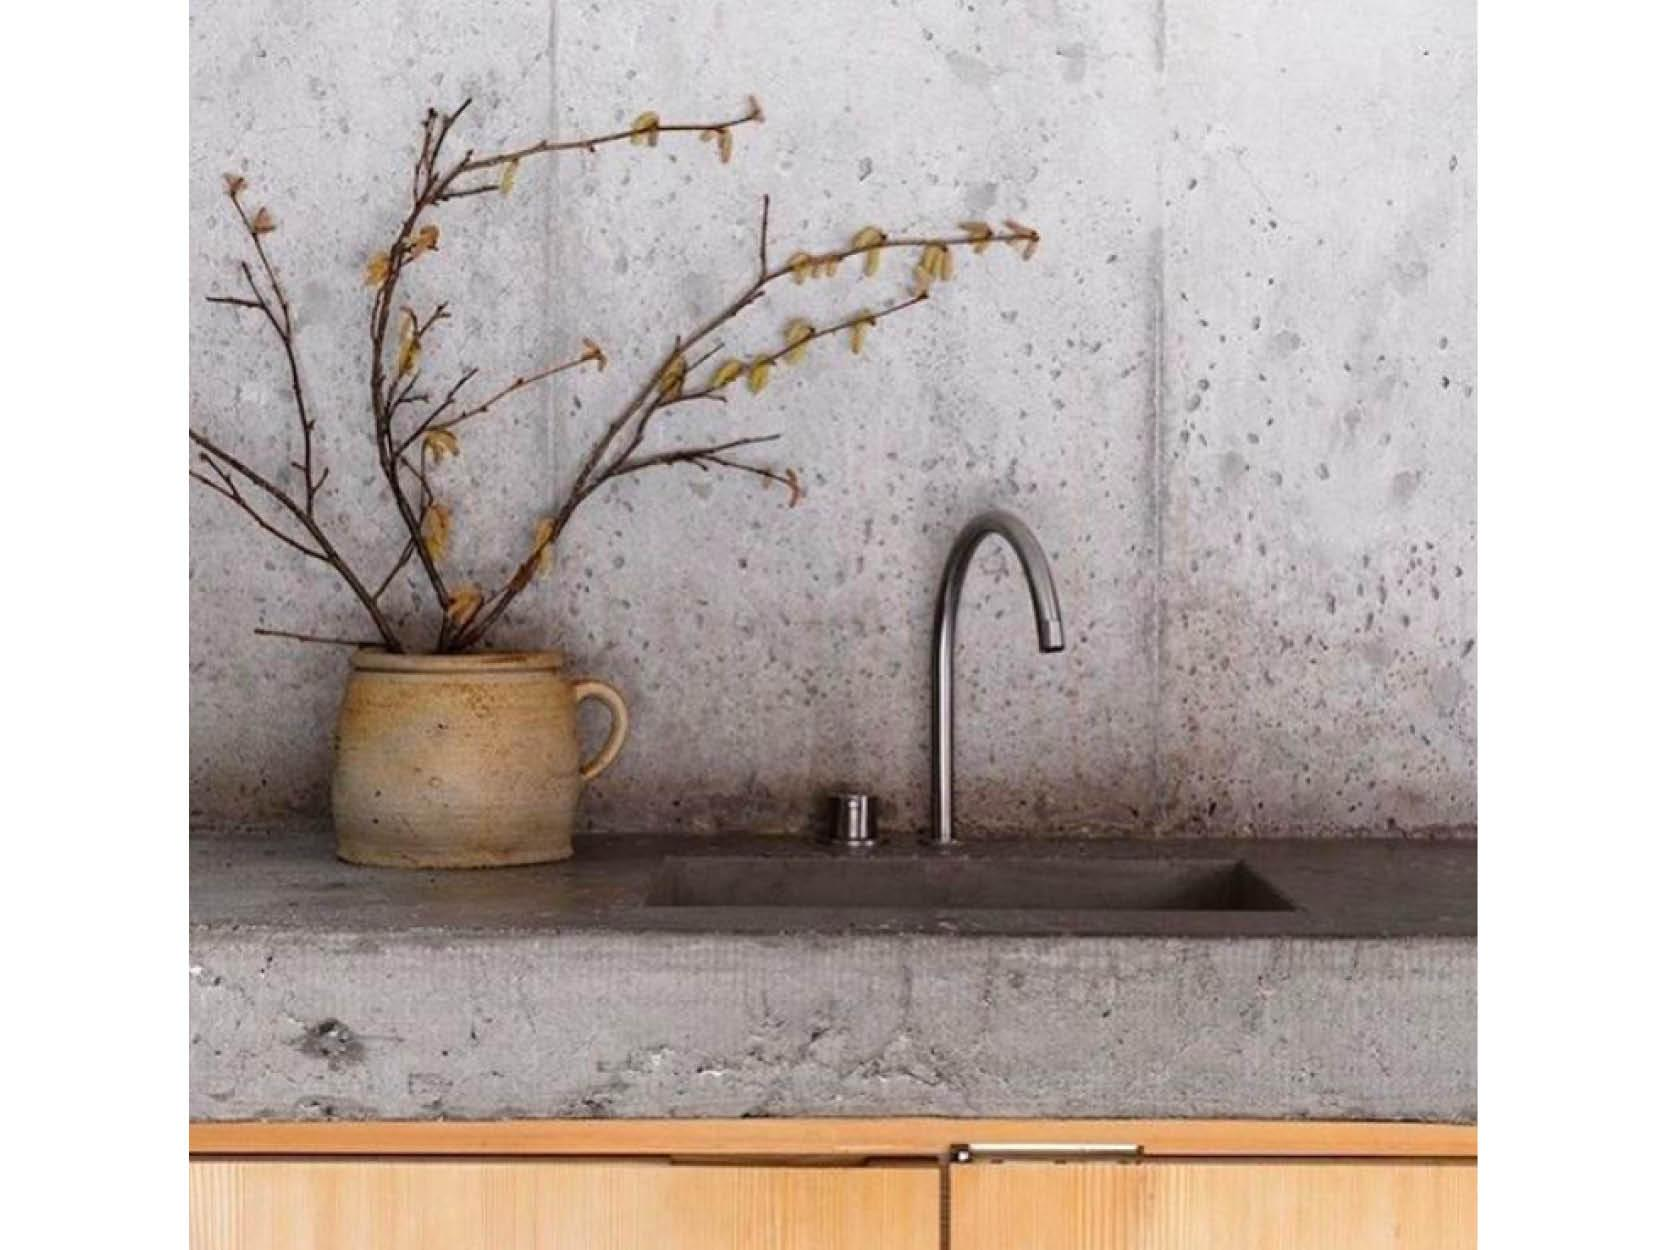 Rustic Concrete Worktops & Splashbacks via Pinterest